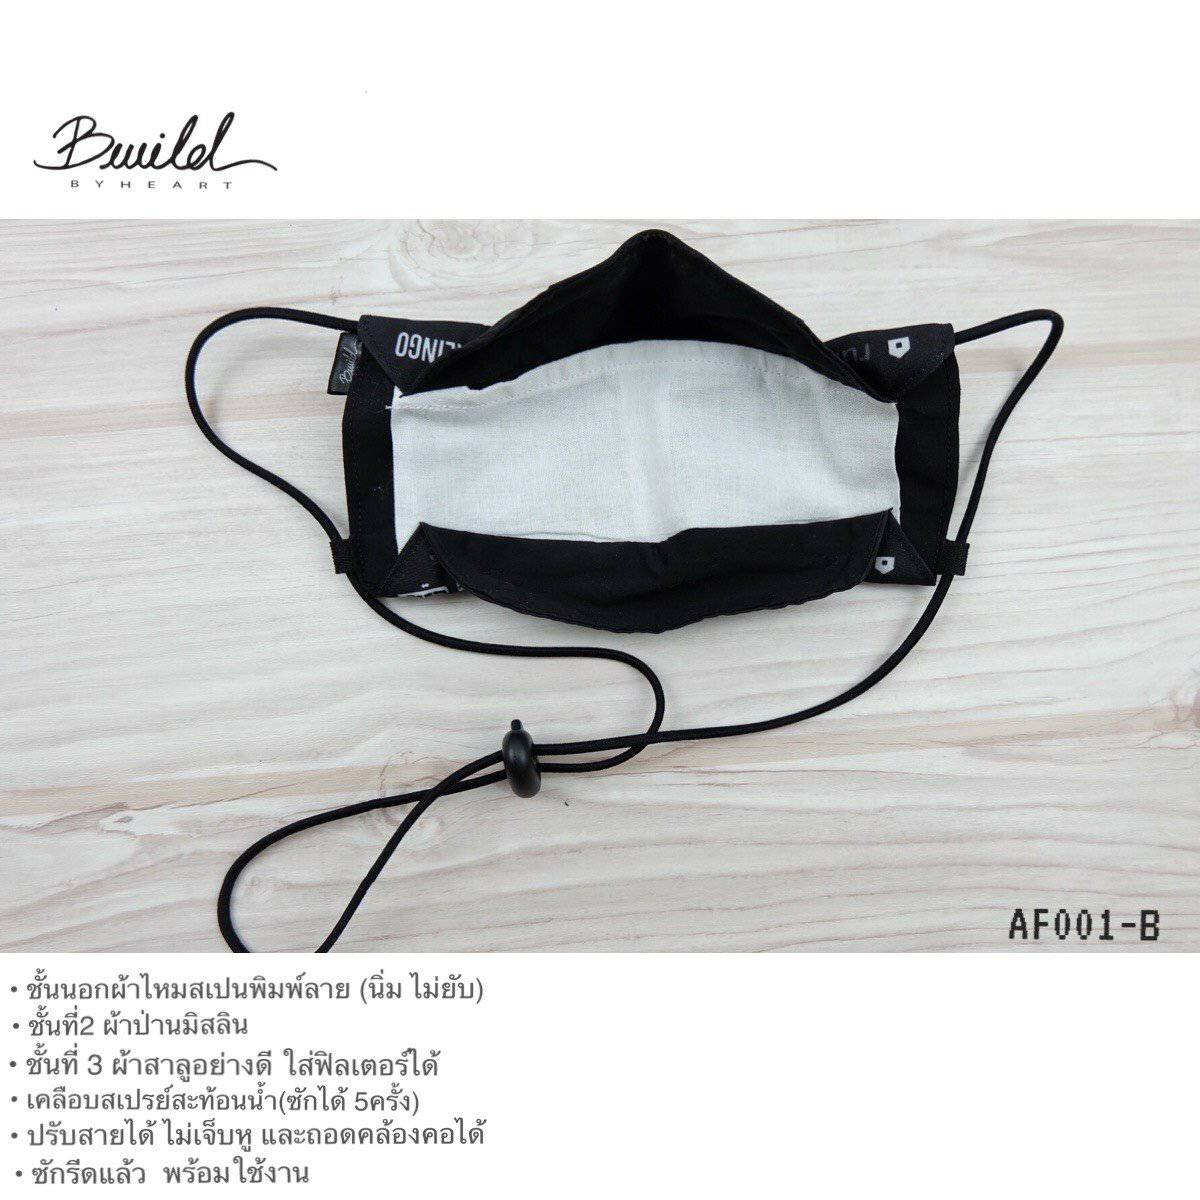 Bwild : Face Mask #StayHome (AF001-B) - BWILD byHeart